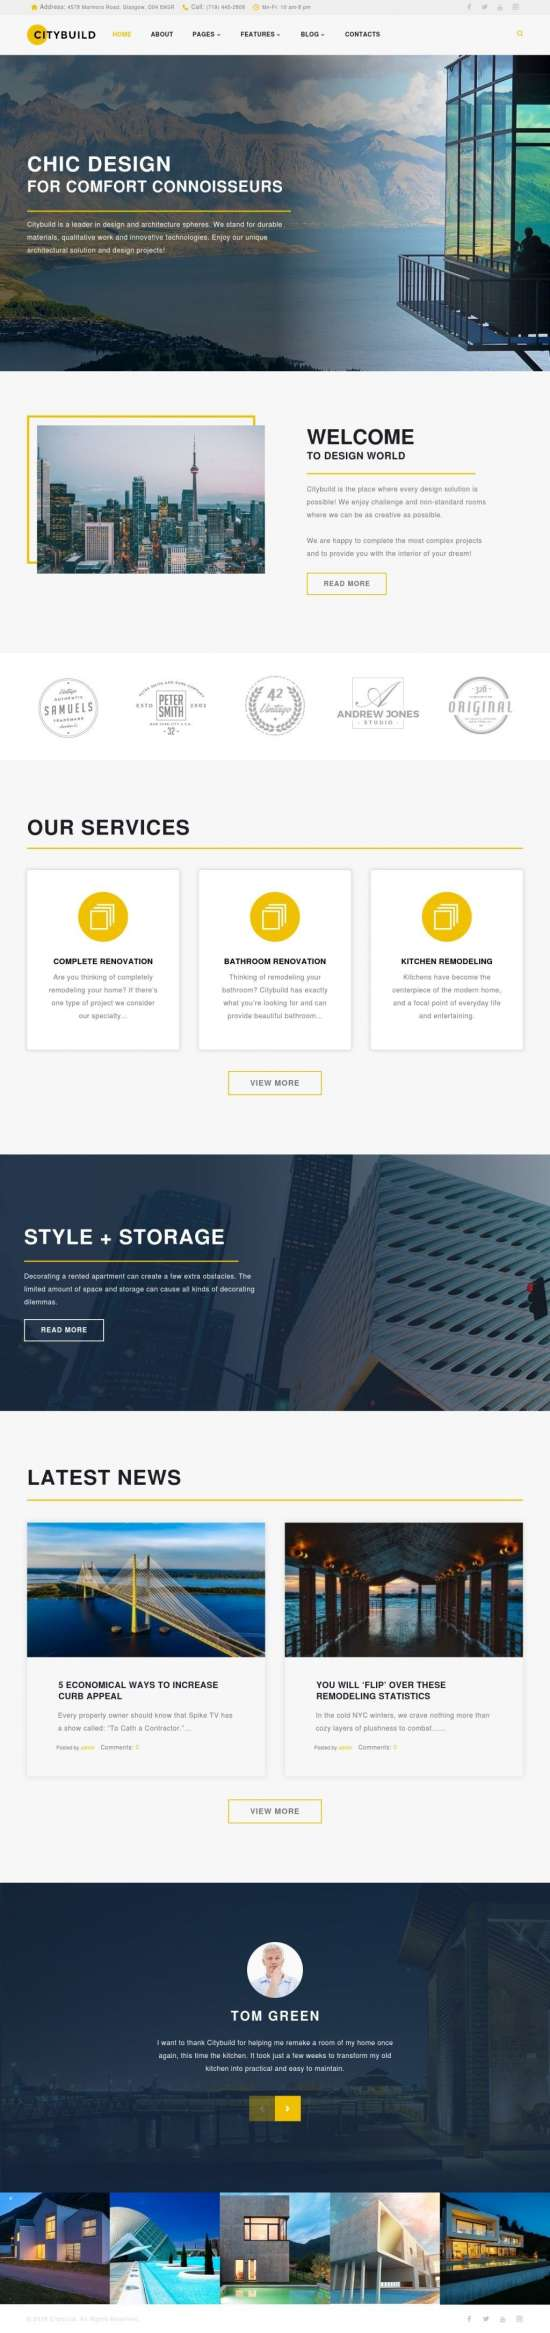 citybuild wordpress theme 01 550x2333 - Citybuild Wordpress Theme